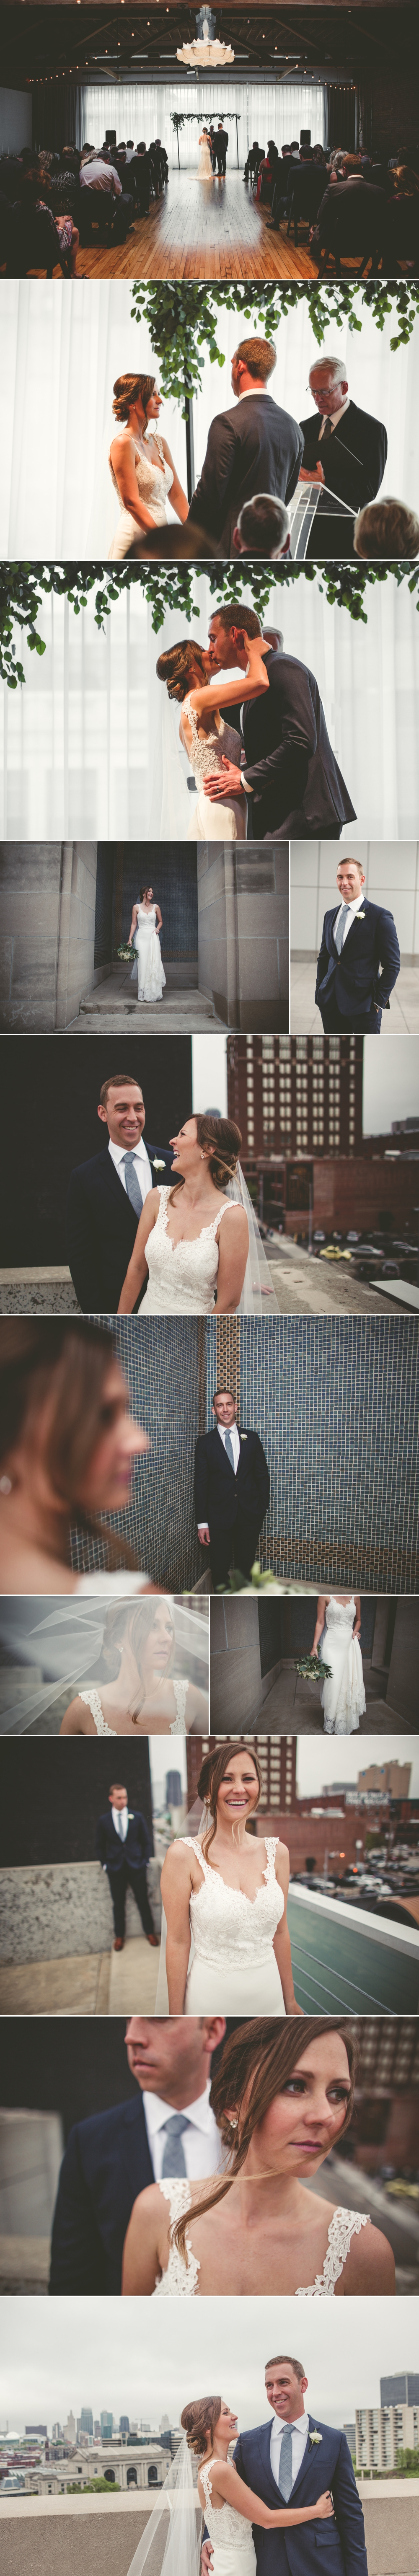 jason_domingues_photography_best_kansas_city_wedding_photographer_kc_weddings_berg_0002